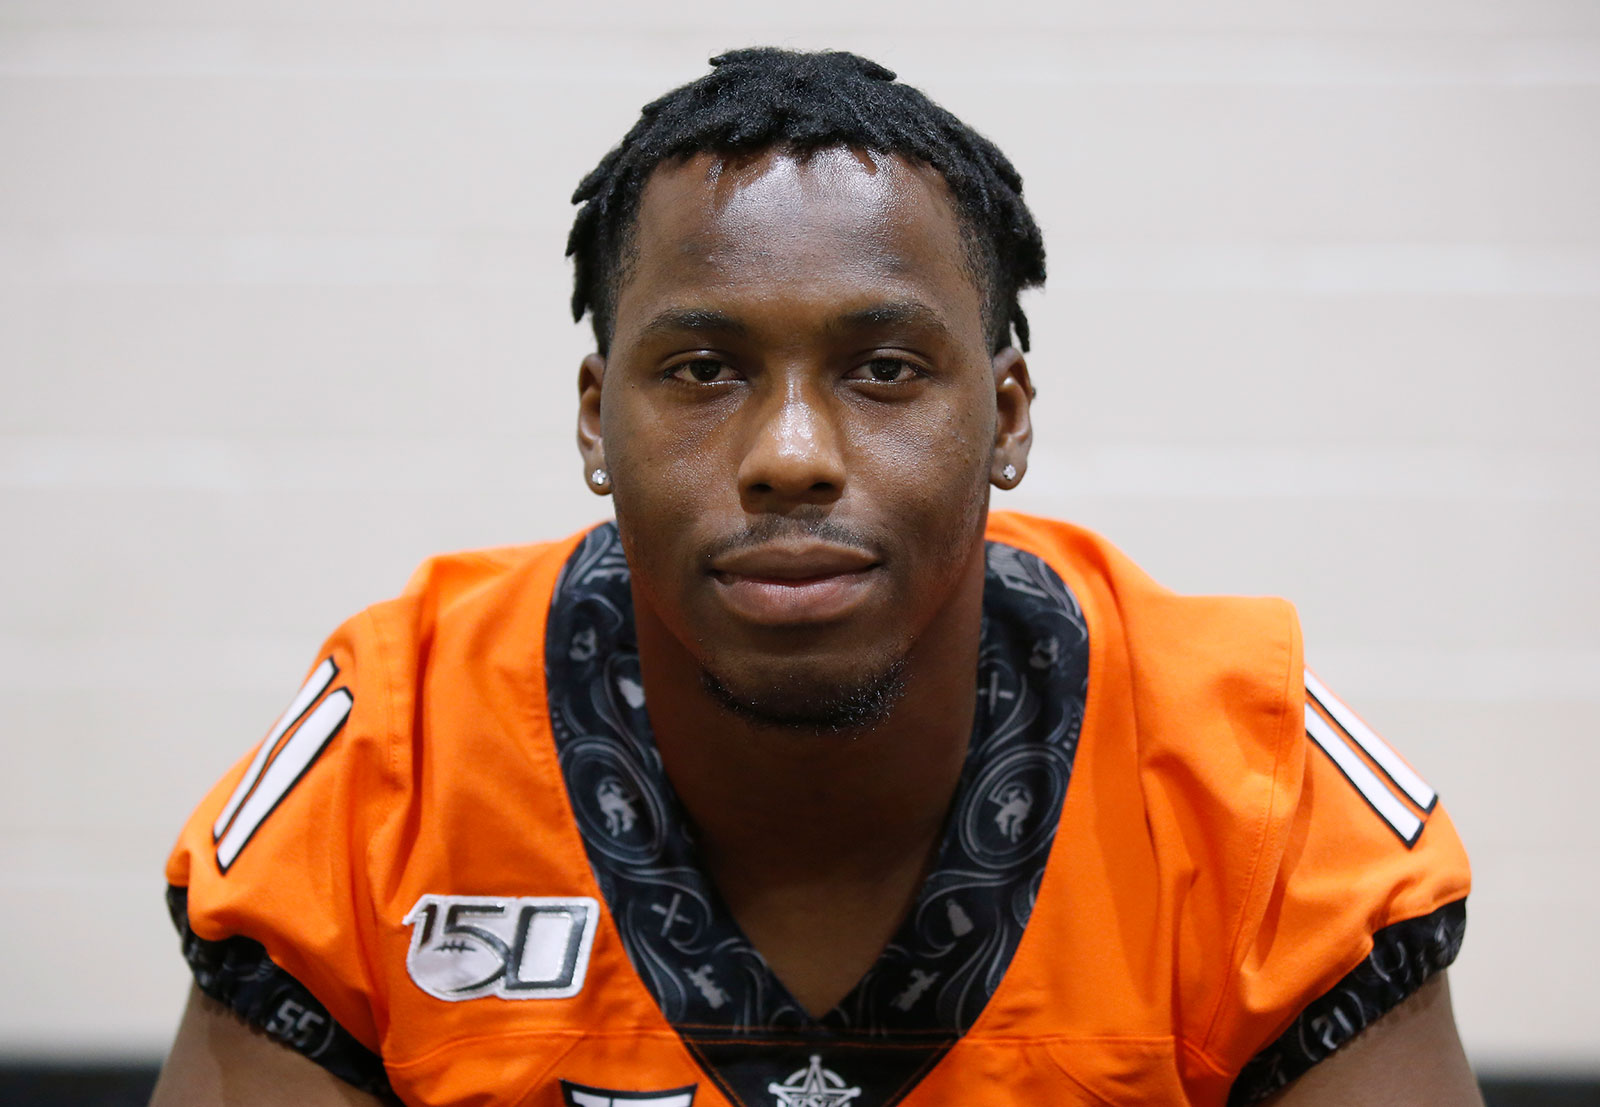 Oklahoma State linebacker Amen Ogbongbemiga during a media day in Stillwater, Oklahoma, in 2019.